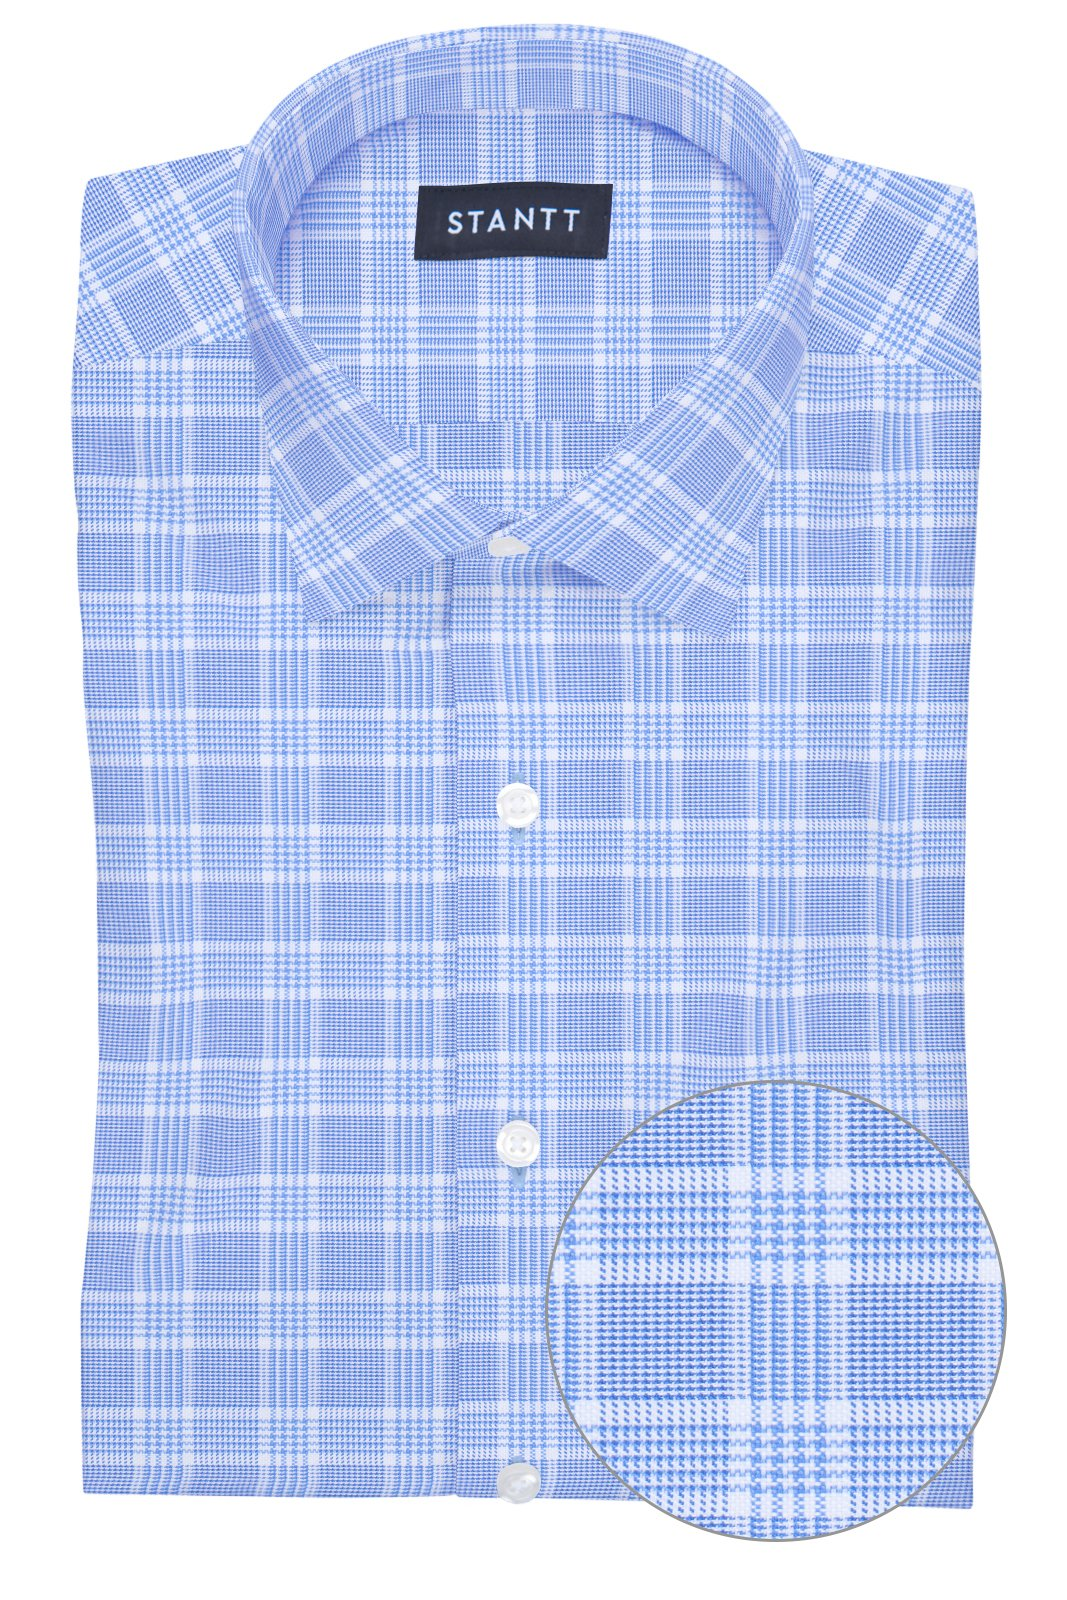 British Blue Prince of Wales Check: Modified-Spread Collar, Barrel Cuff